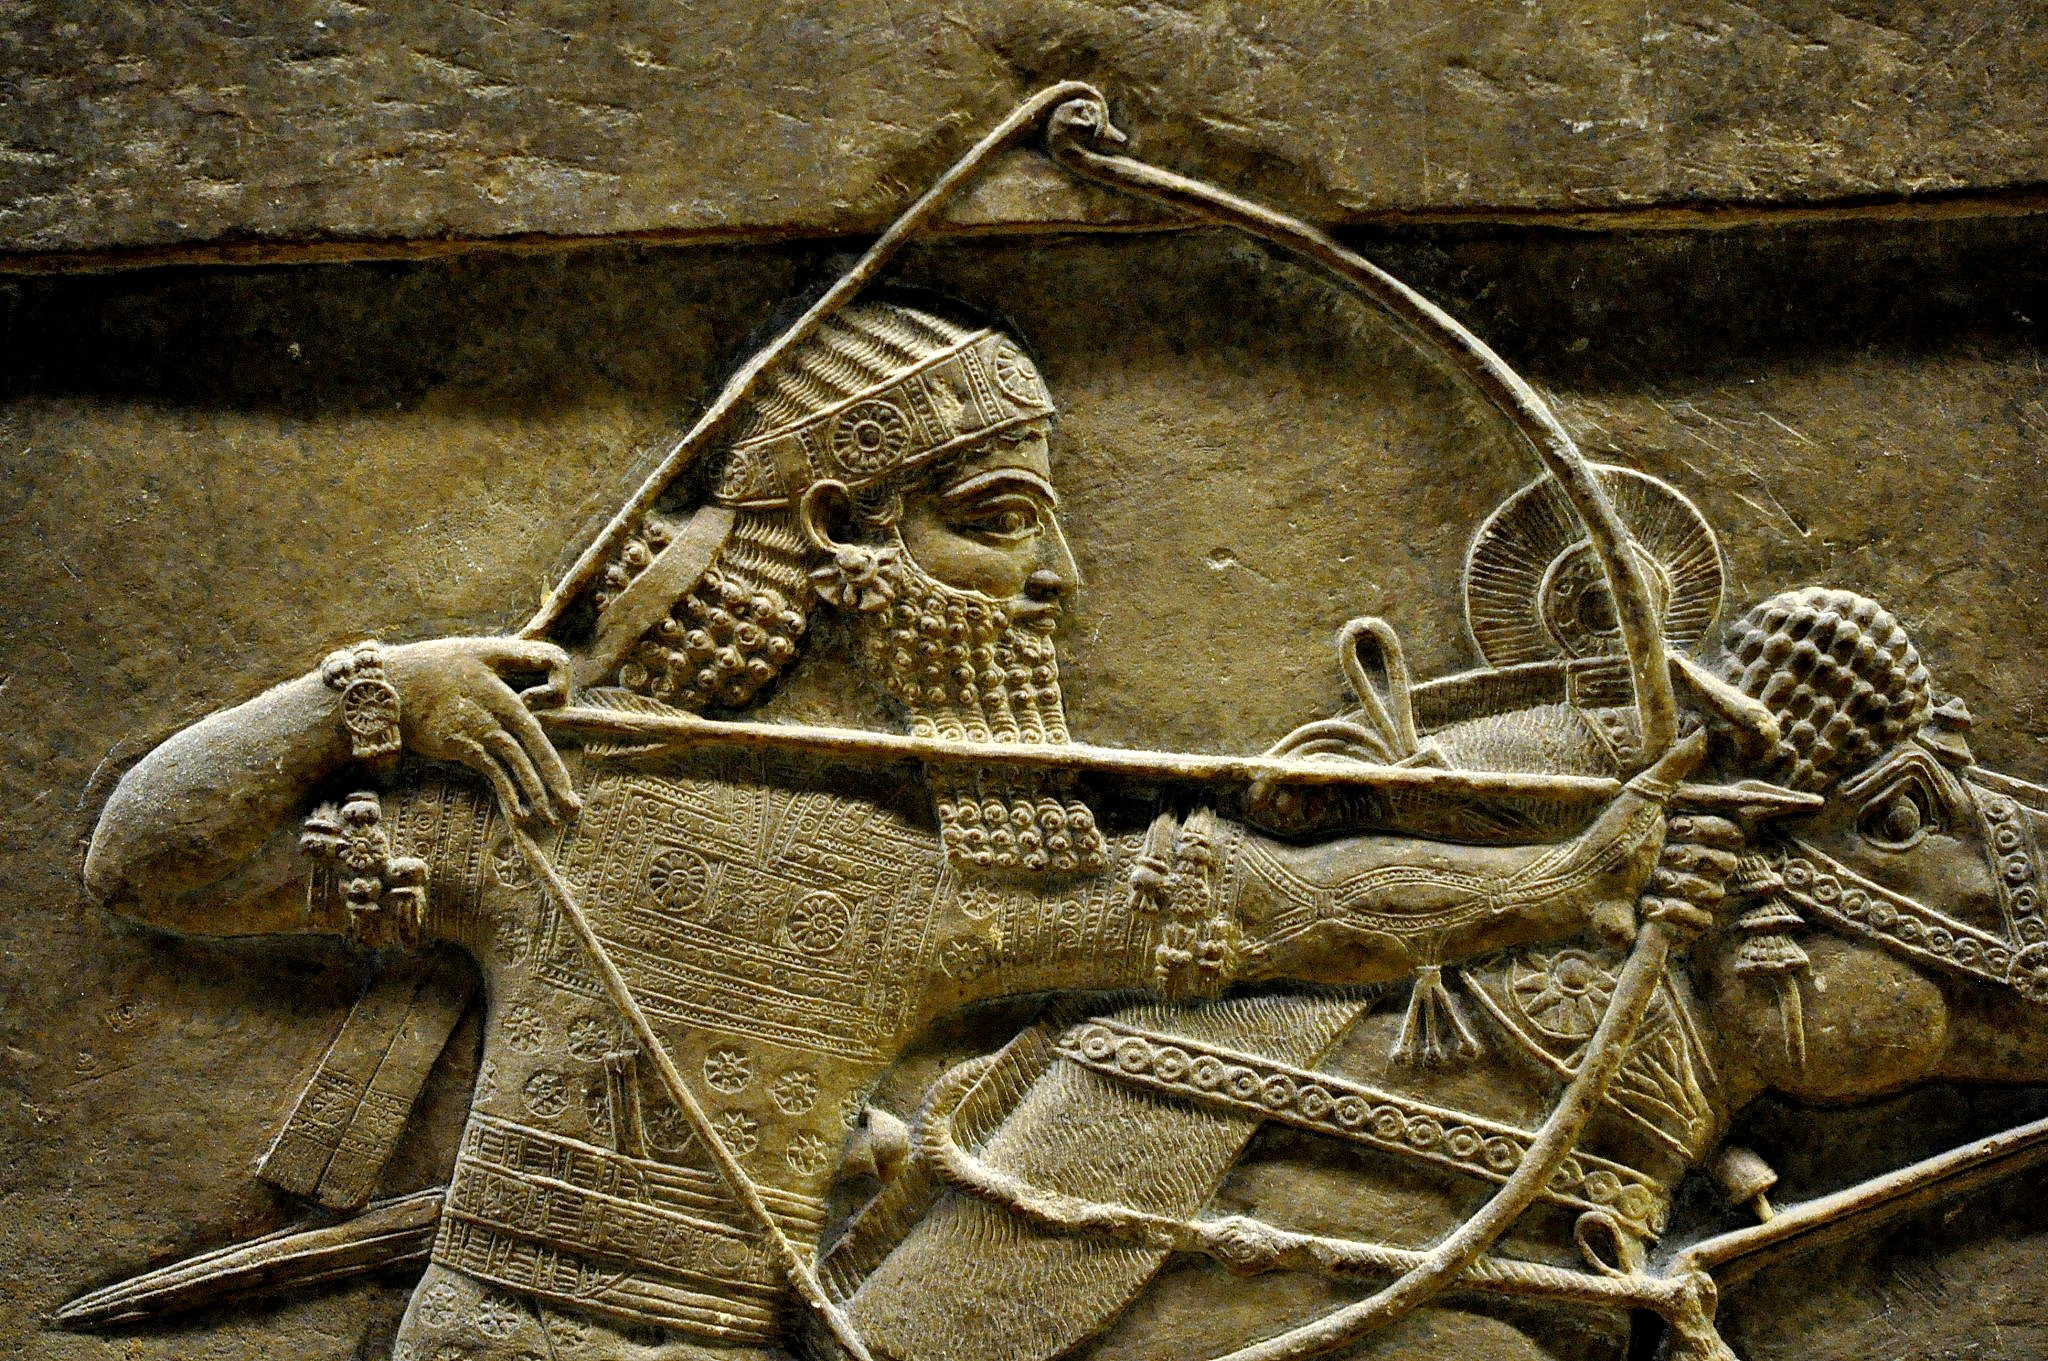 ashurbanipal_ii_detail_of_a_lion-hunt_scene_from_nineveh_7th_century_bc_the_british_museum.jpg